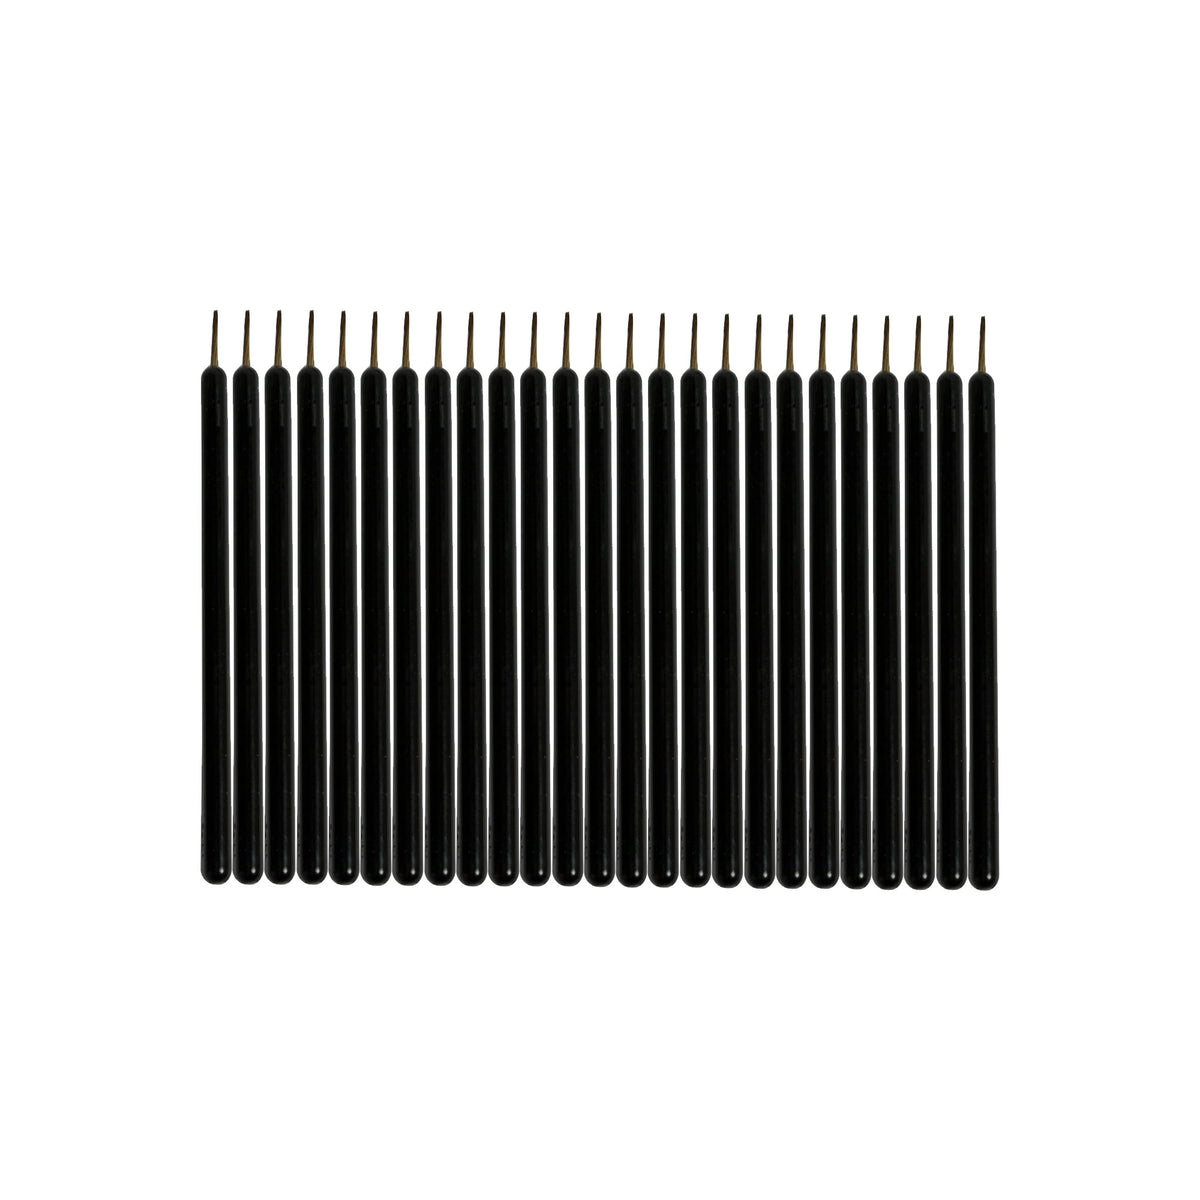 Royal & Langnickel Disposable Eyeliner Brushes (25pc) - Red Carpet FX - Professional Makeup